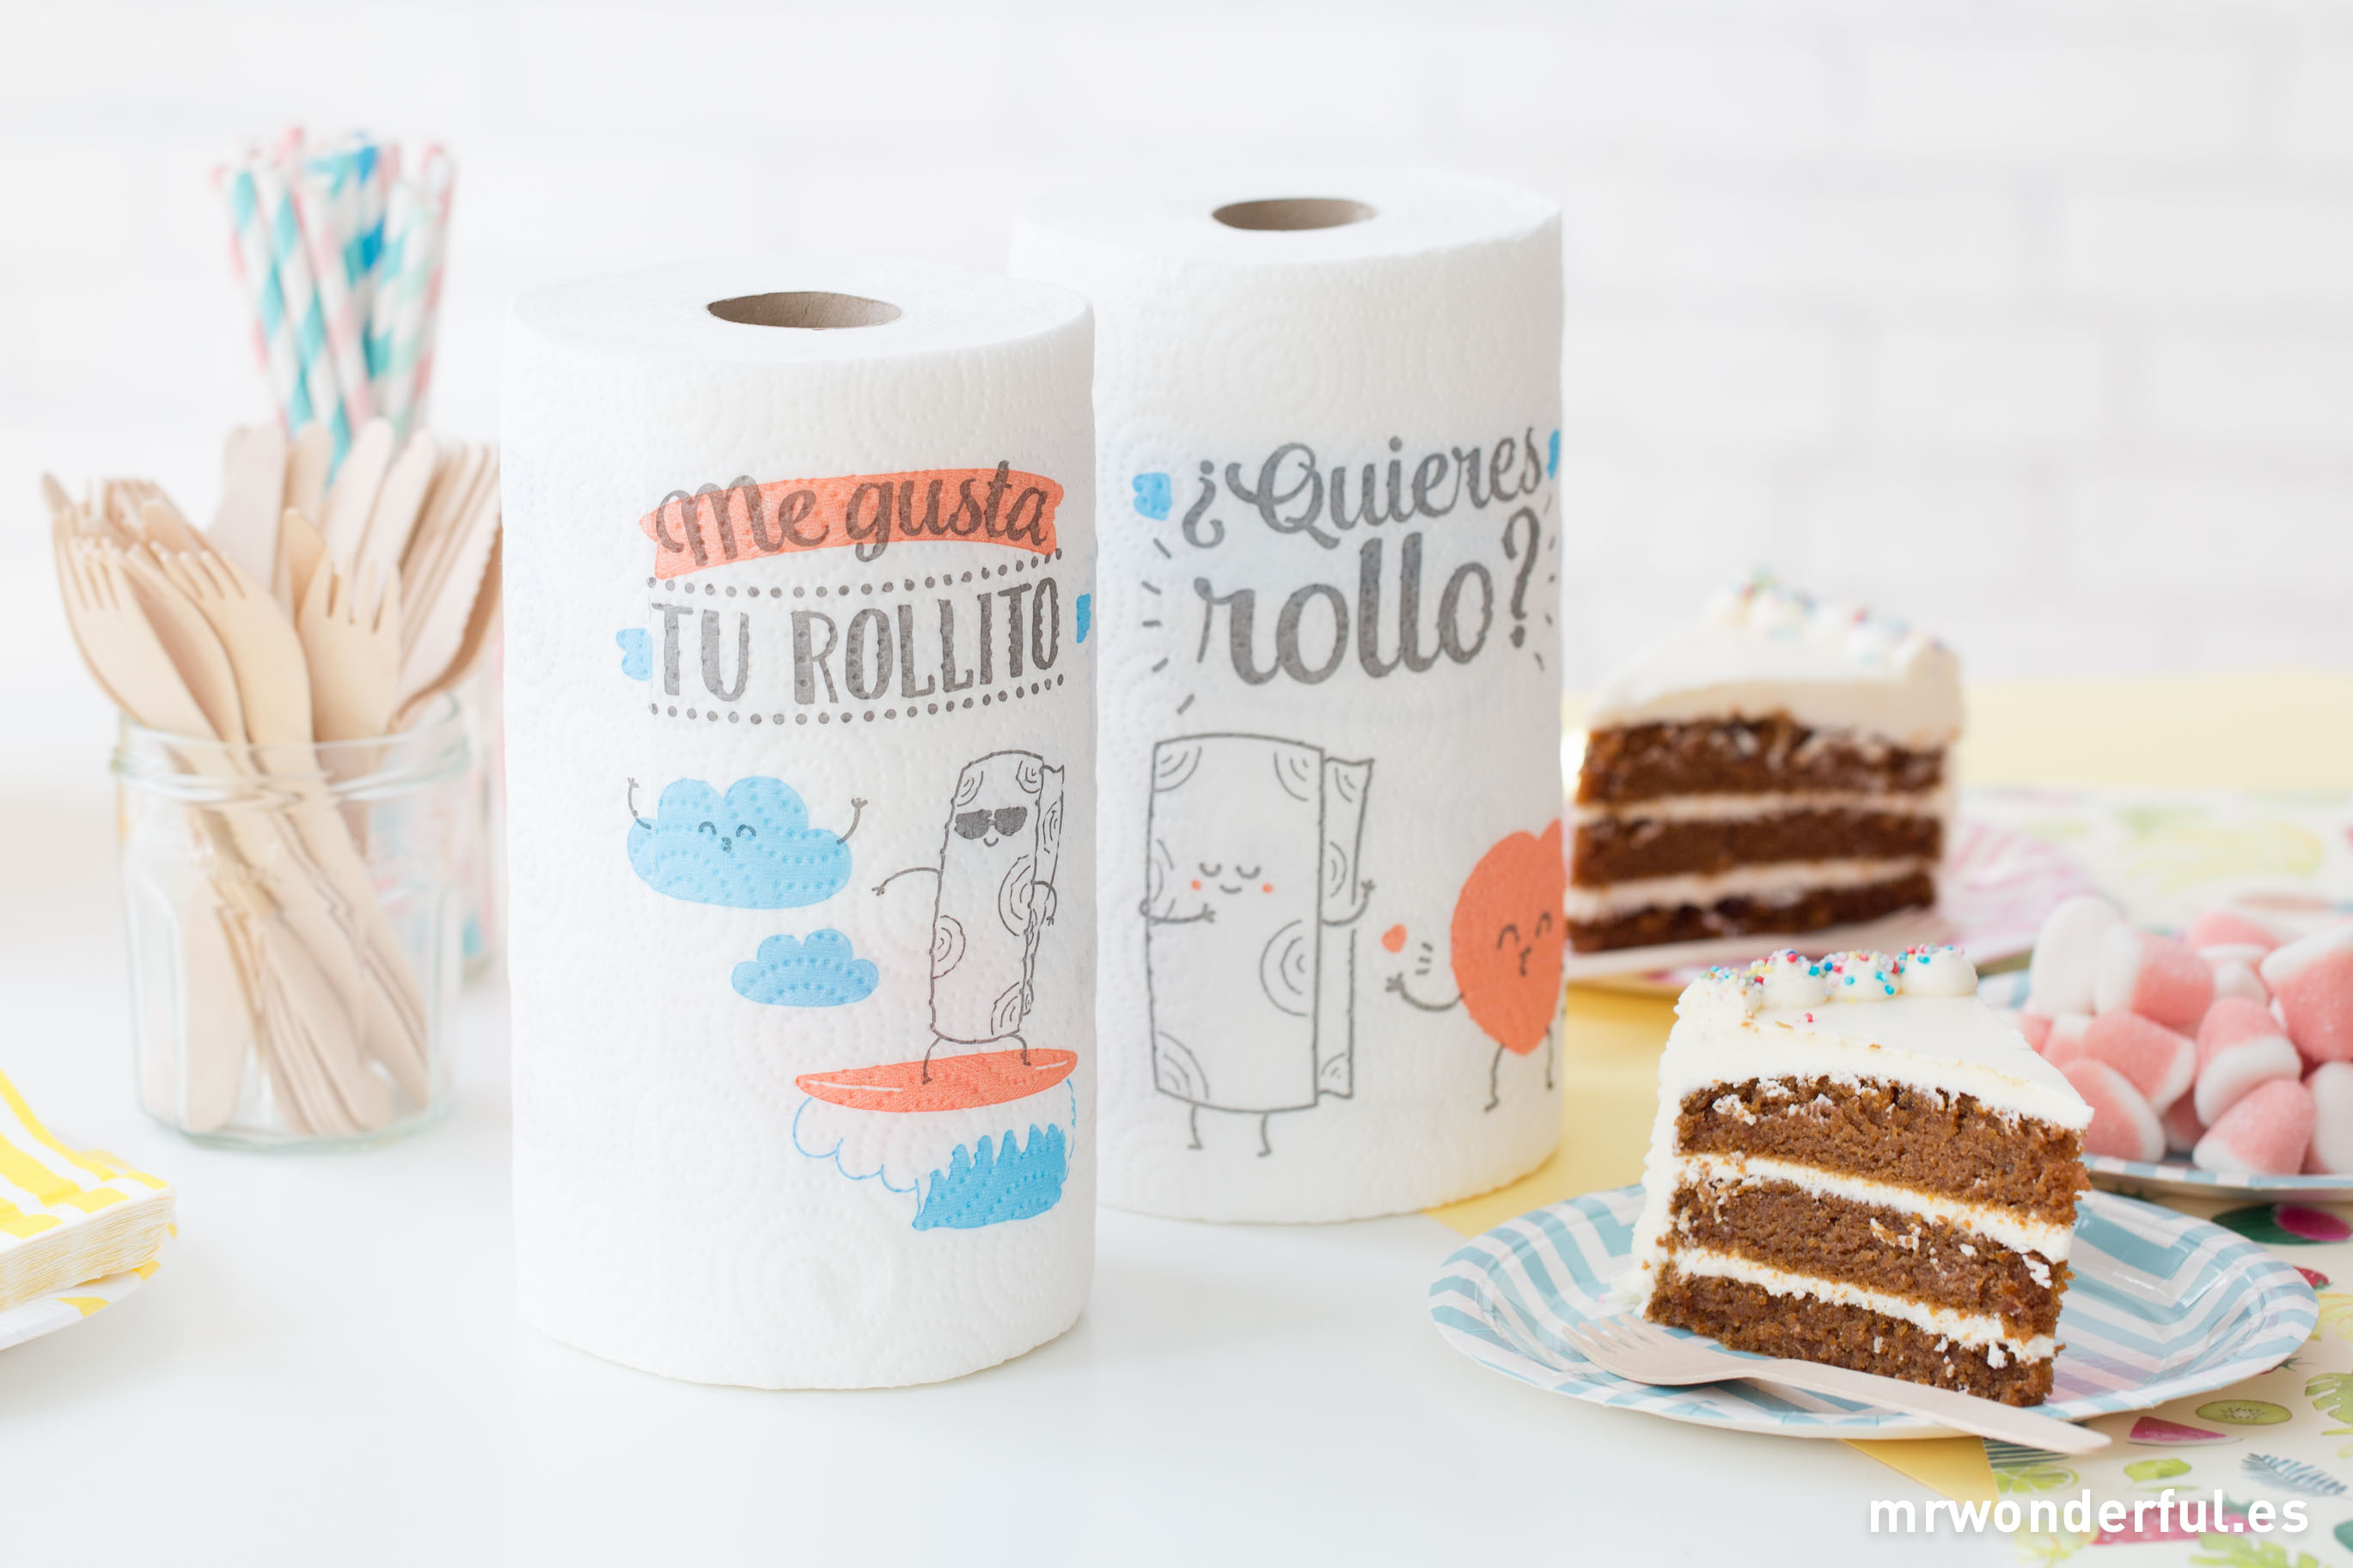 mrwonderful_colohogar-2015-papel-3